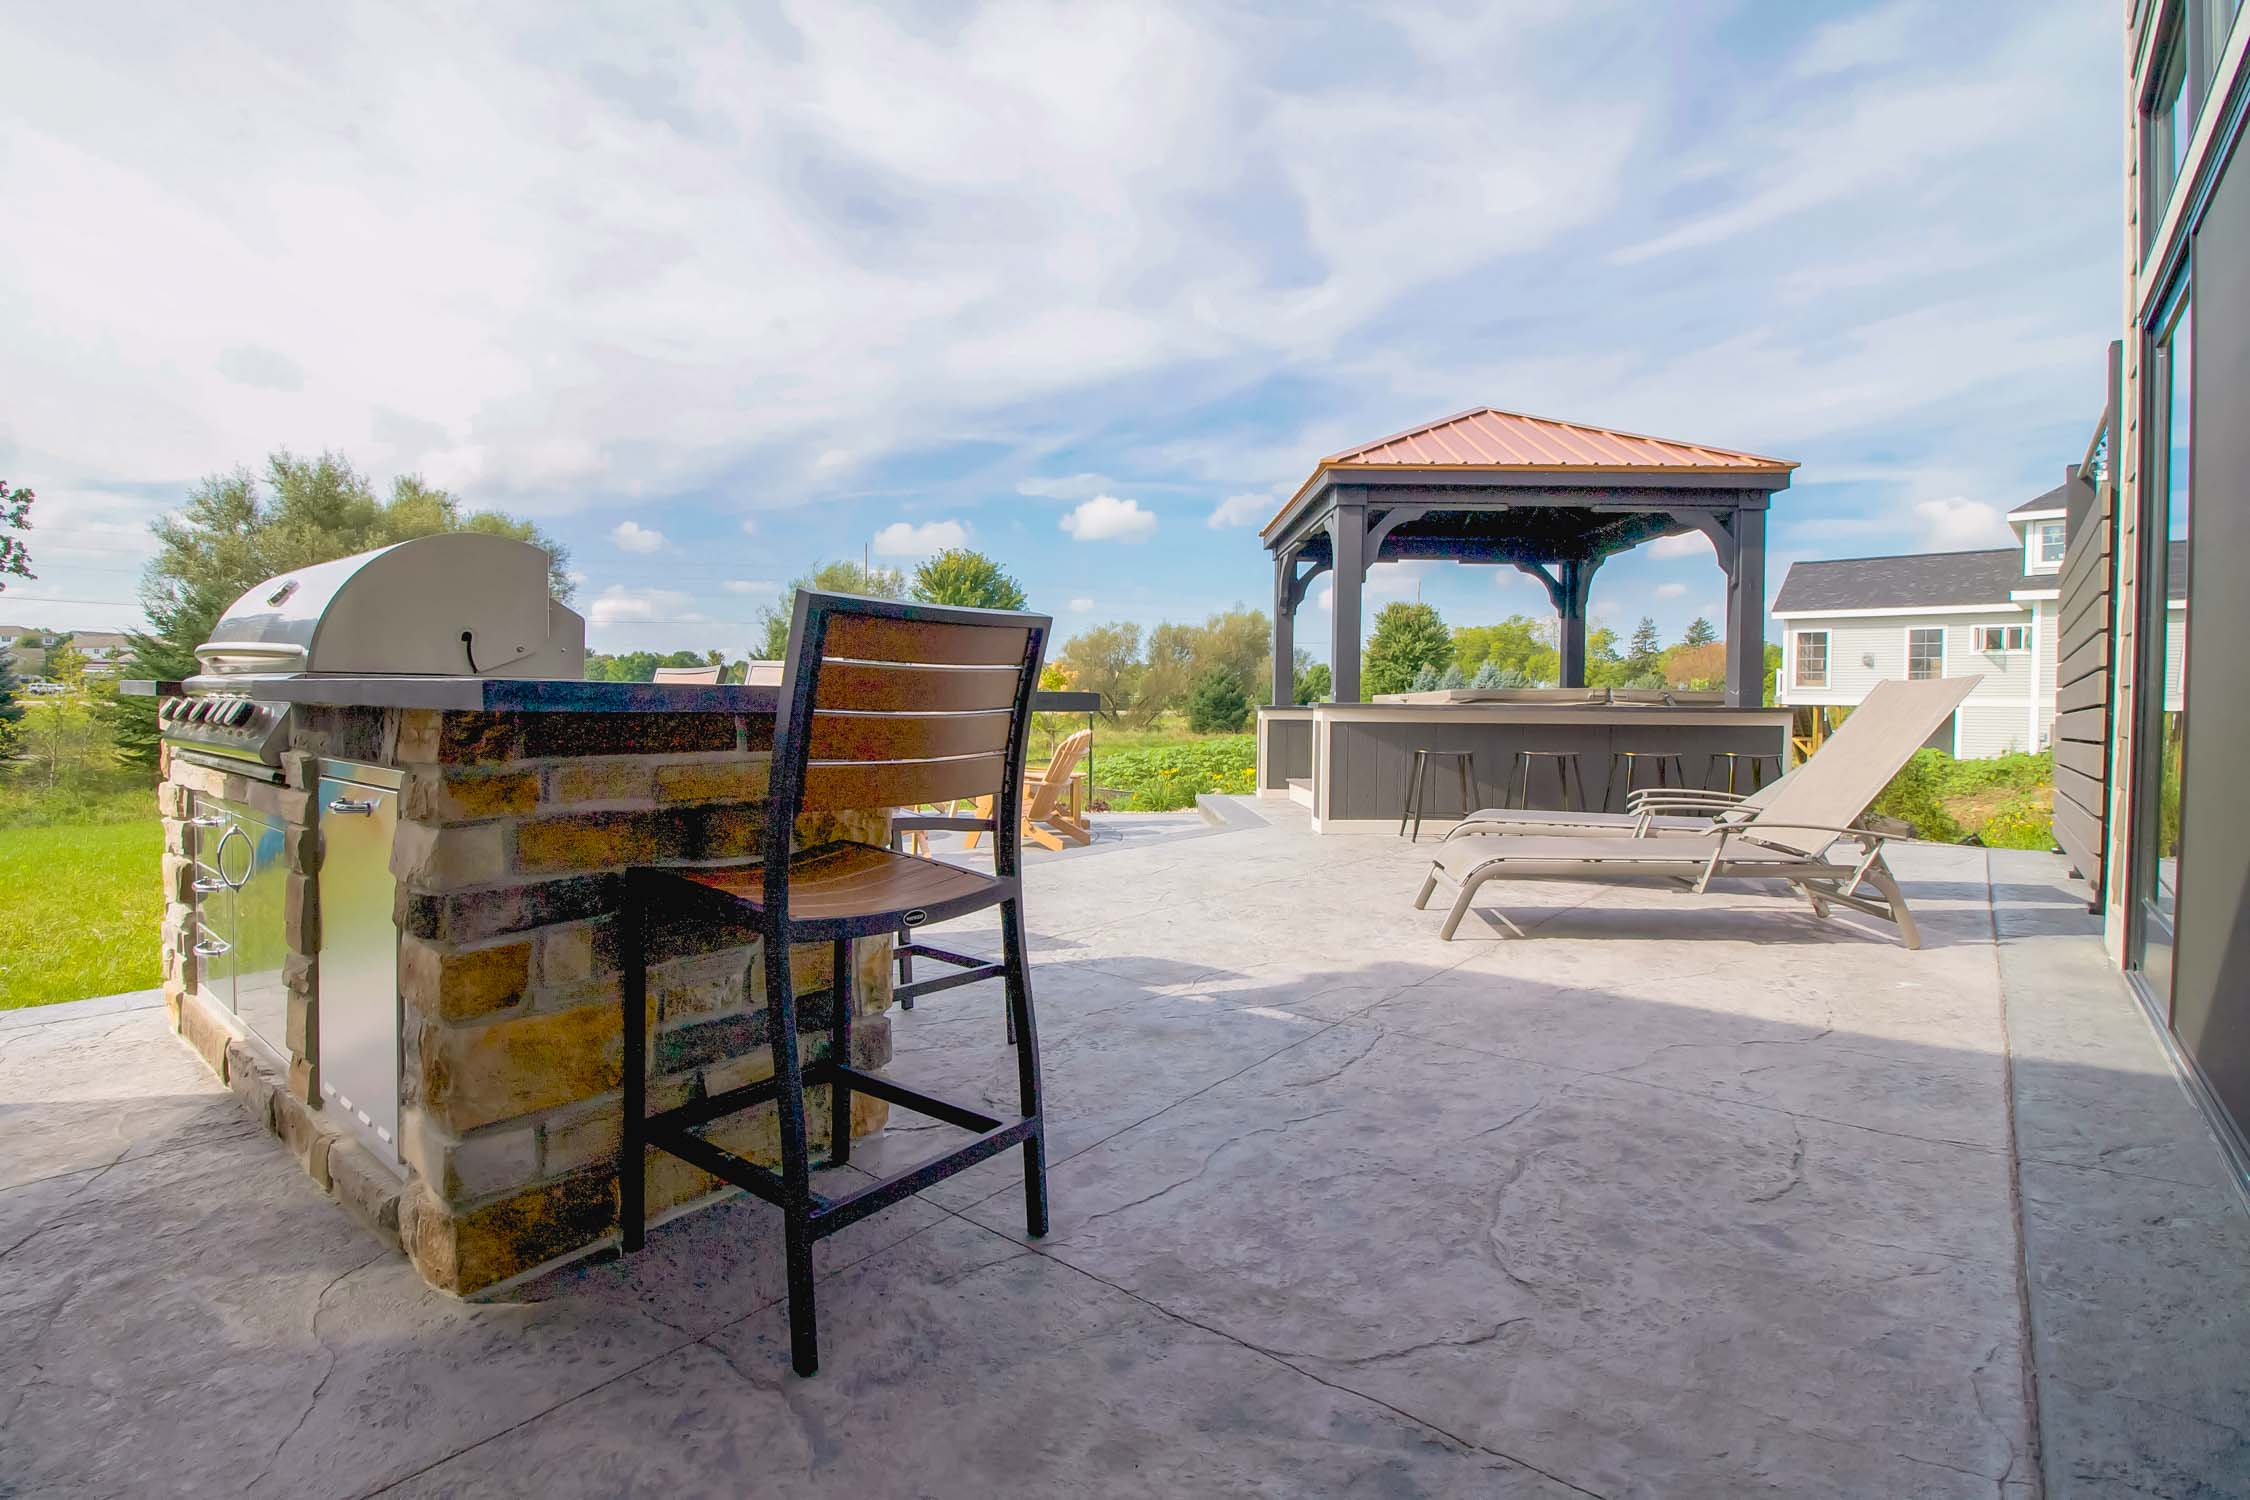 - This patio includes options for lounging in a chaise, seating at the grilling station, a bar by the hot tub, and Adirondack chairs by the fire pit.